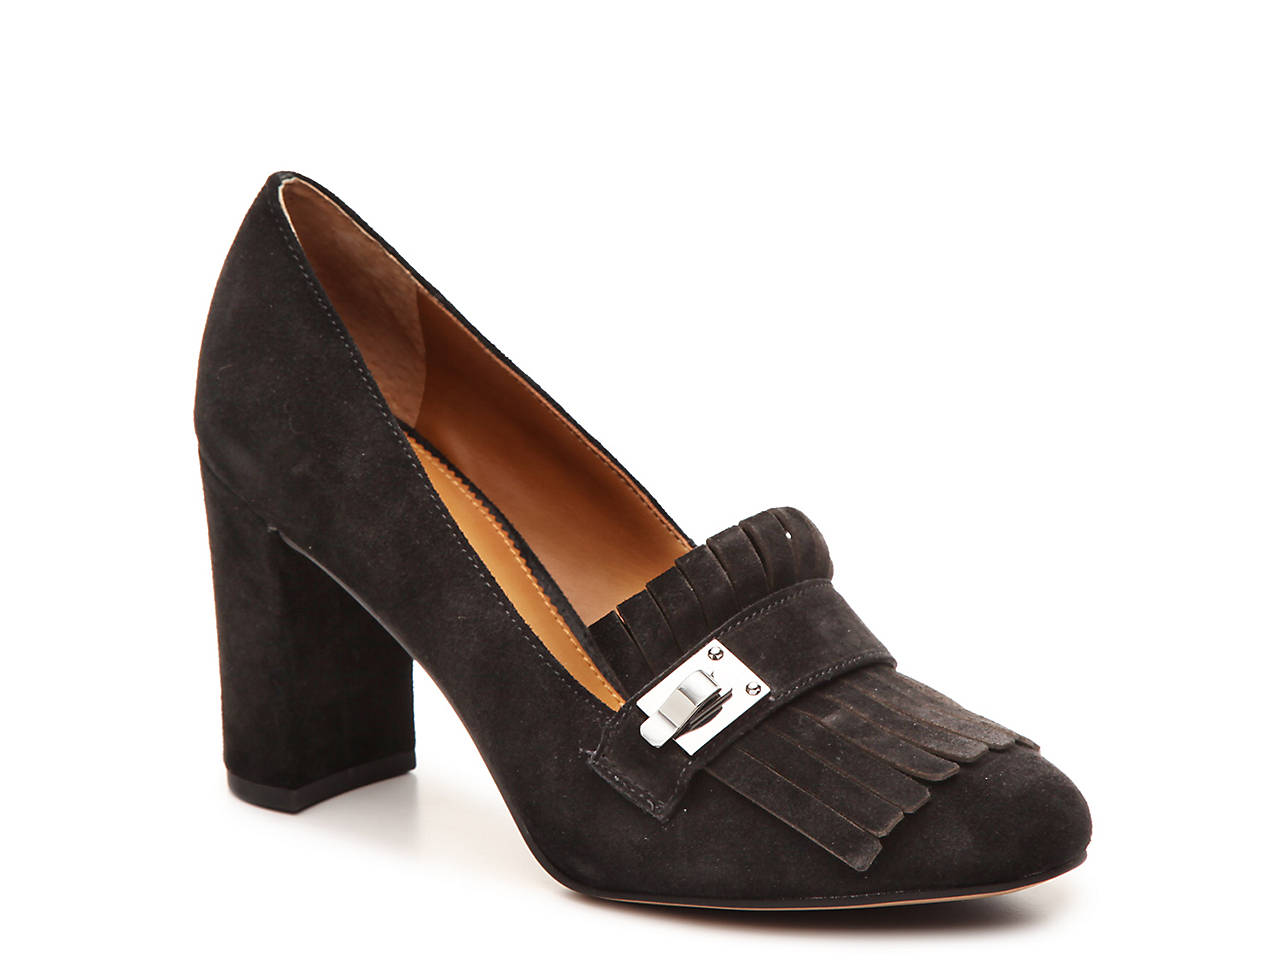 Find great deals on eBay for dsw shoes. Shop with confidence.